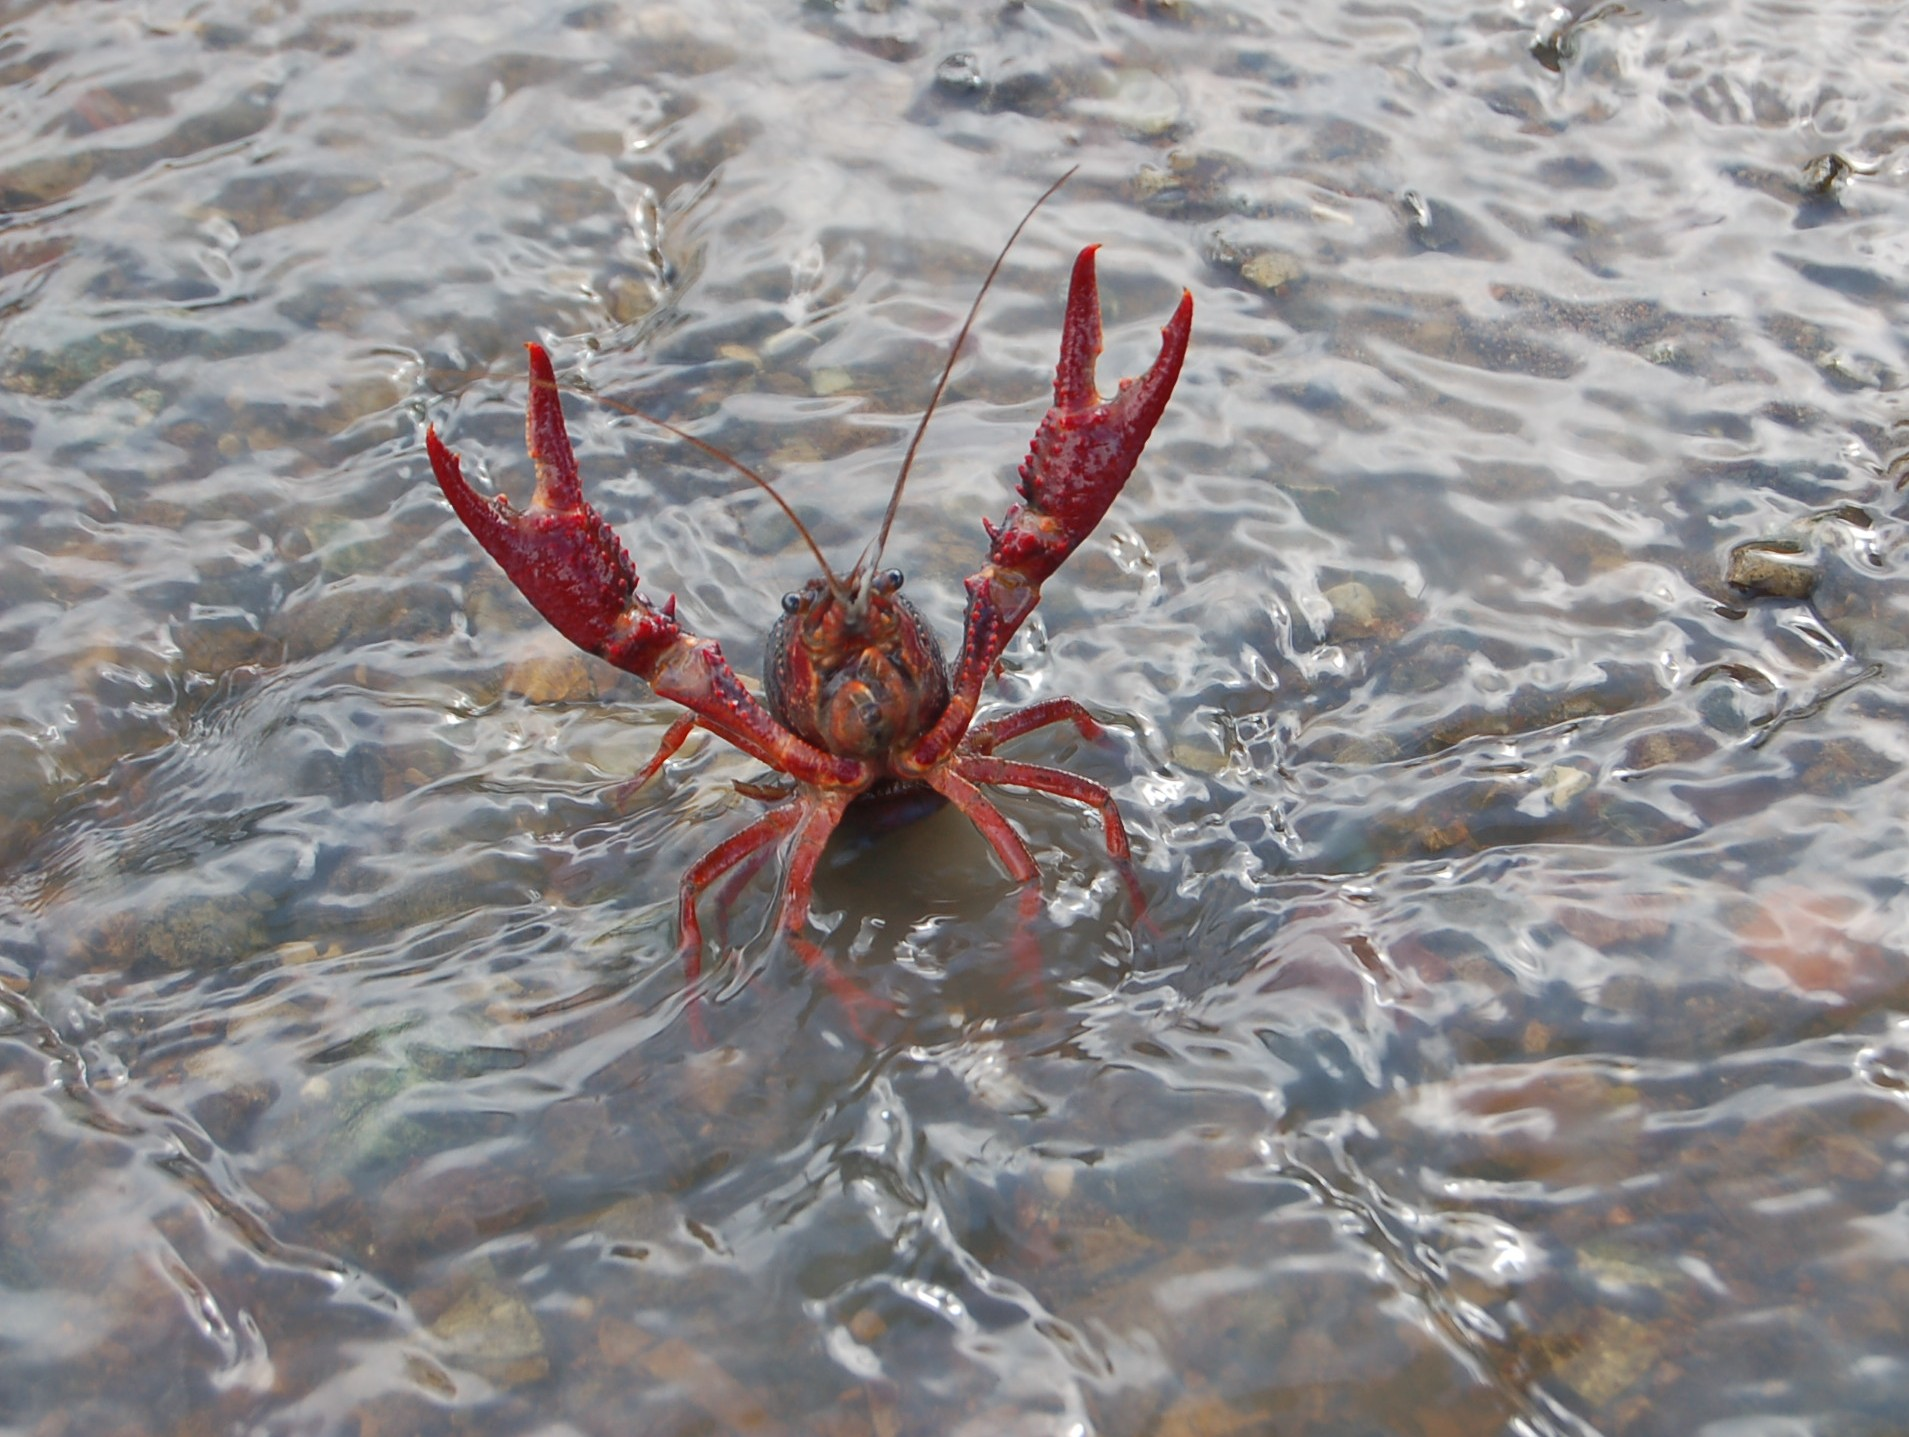 Crayfish out for a walk in the rain